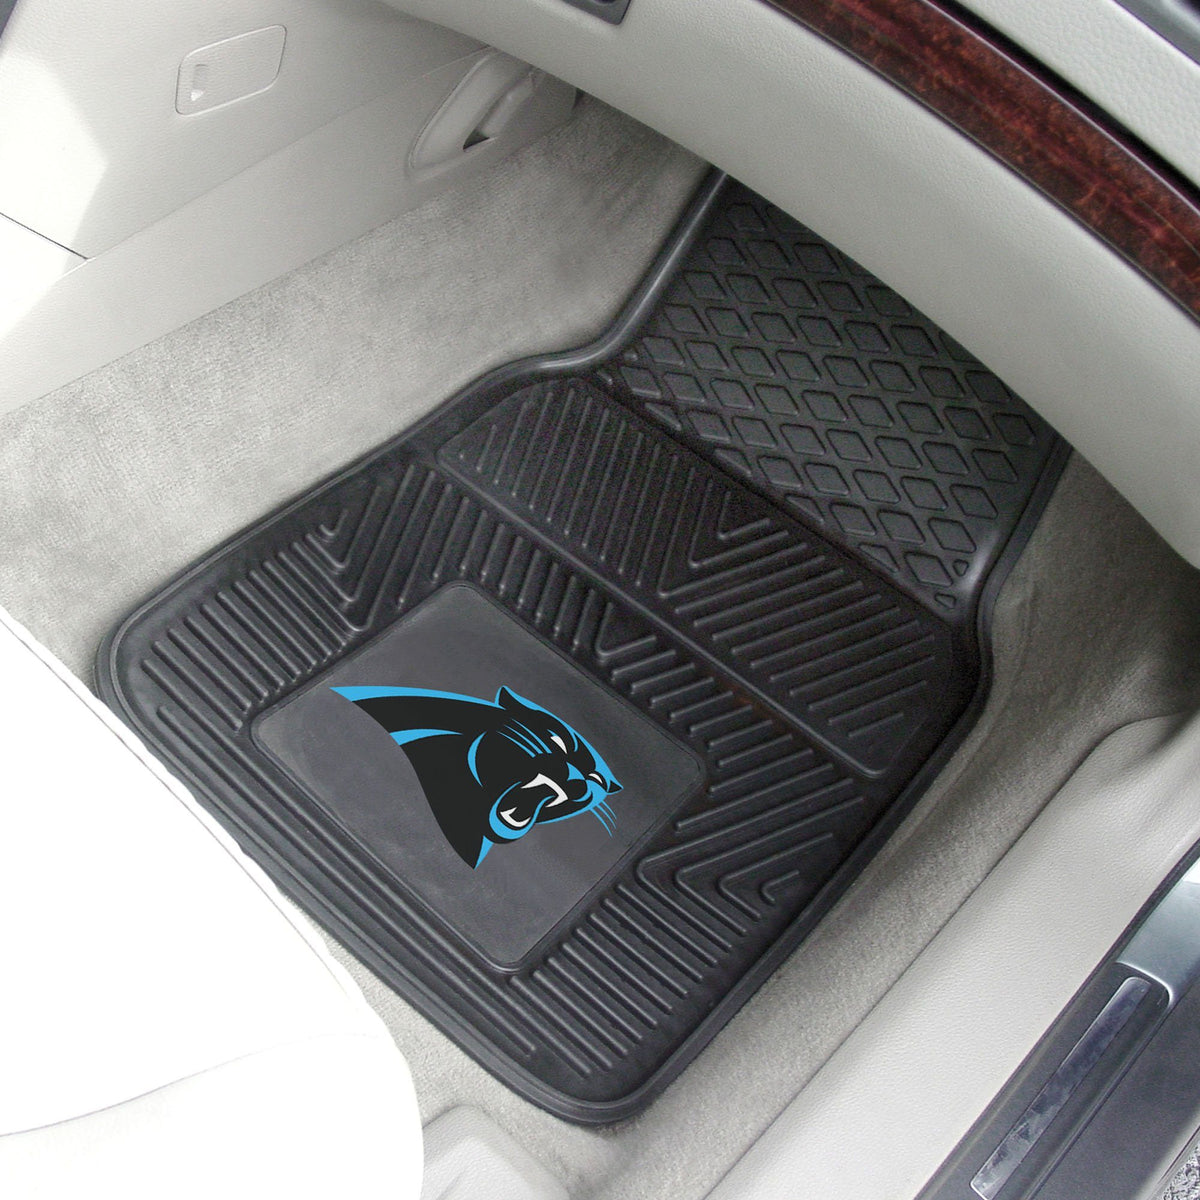 NFL - 2-pc Vinyl Car Mat Set NFL Mats, Front Car Mats, 2-pc Vinyl Car Mat Set, NFL, Auto Fan Mats Carolina Panthers